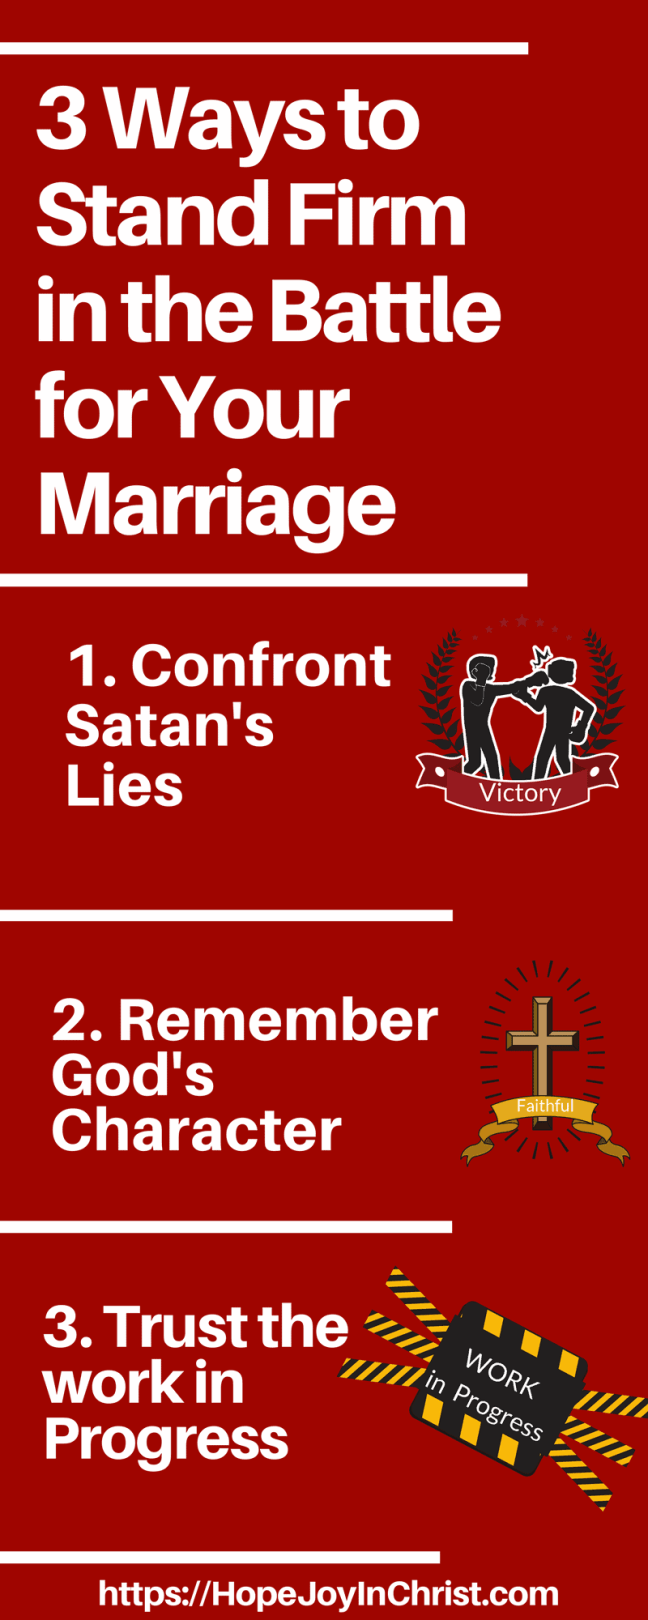 3 Ways to Stand Firm in the Battle for Your marriage LongPin (Christian Marriage, Biblical Wifehood, Reclaiming Hope & Joy in your Marriage ( #Christianmarriage #Biblicalmarriage #Christianliving #MarriageMonday #FindingHopeandJoyinmymarriage